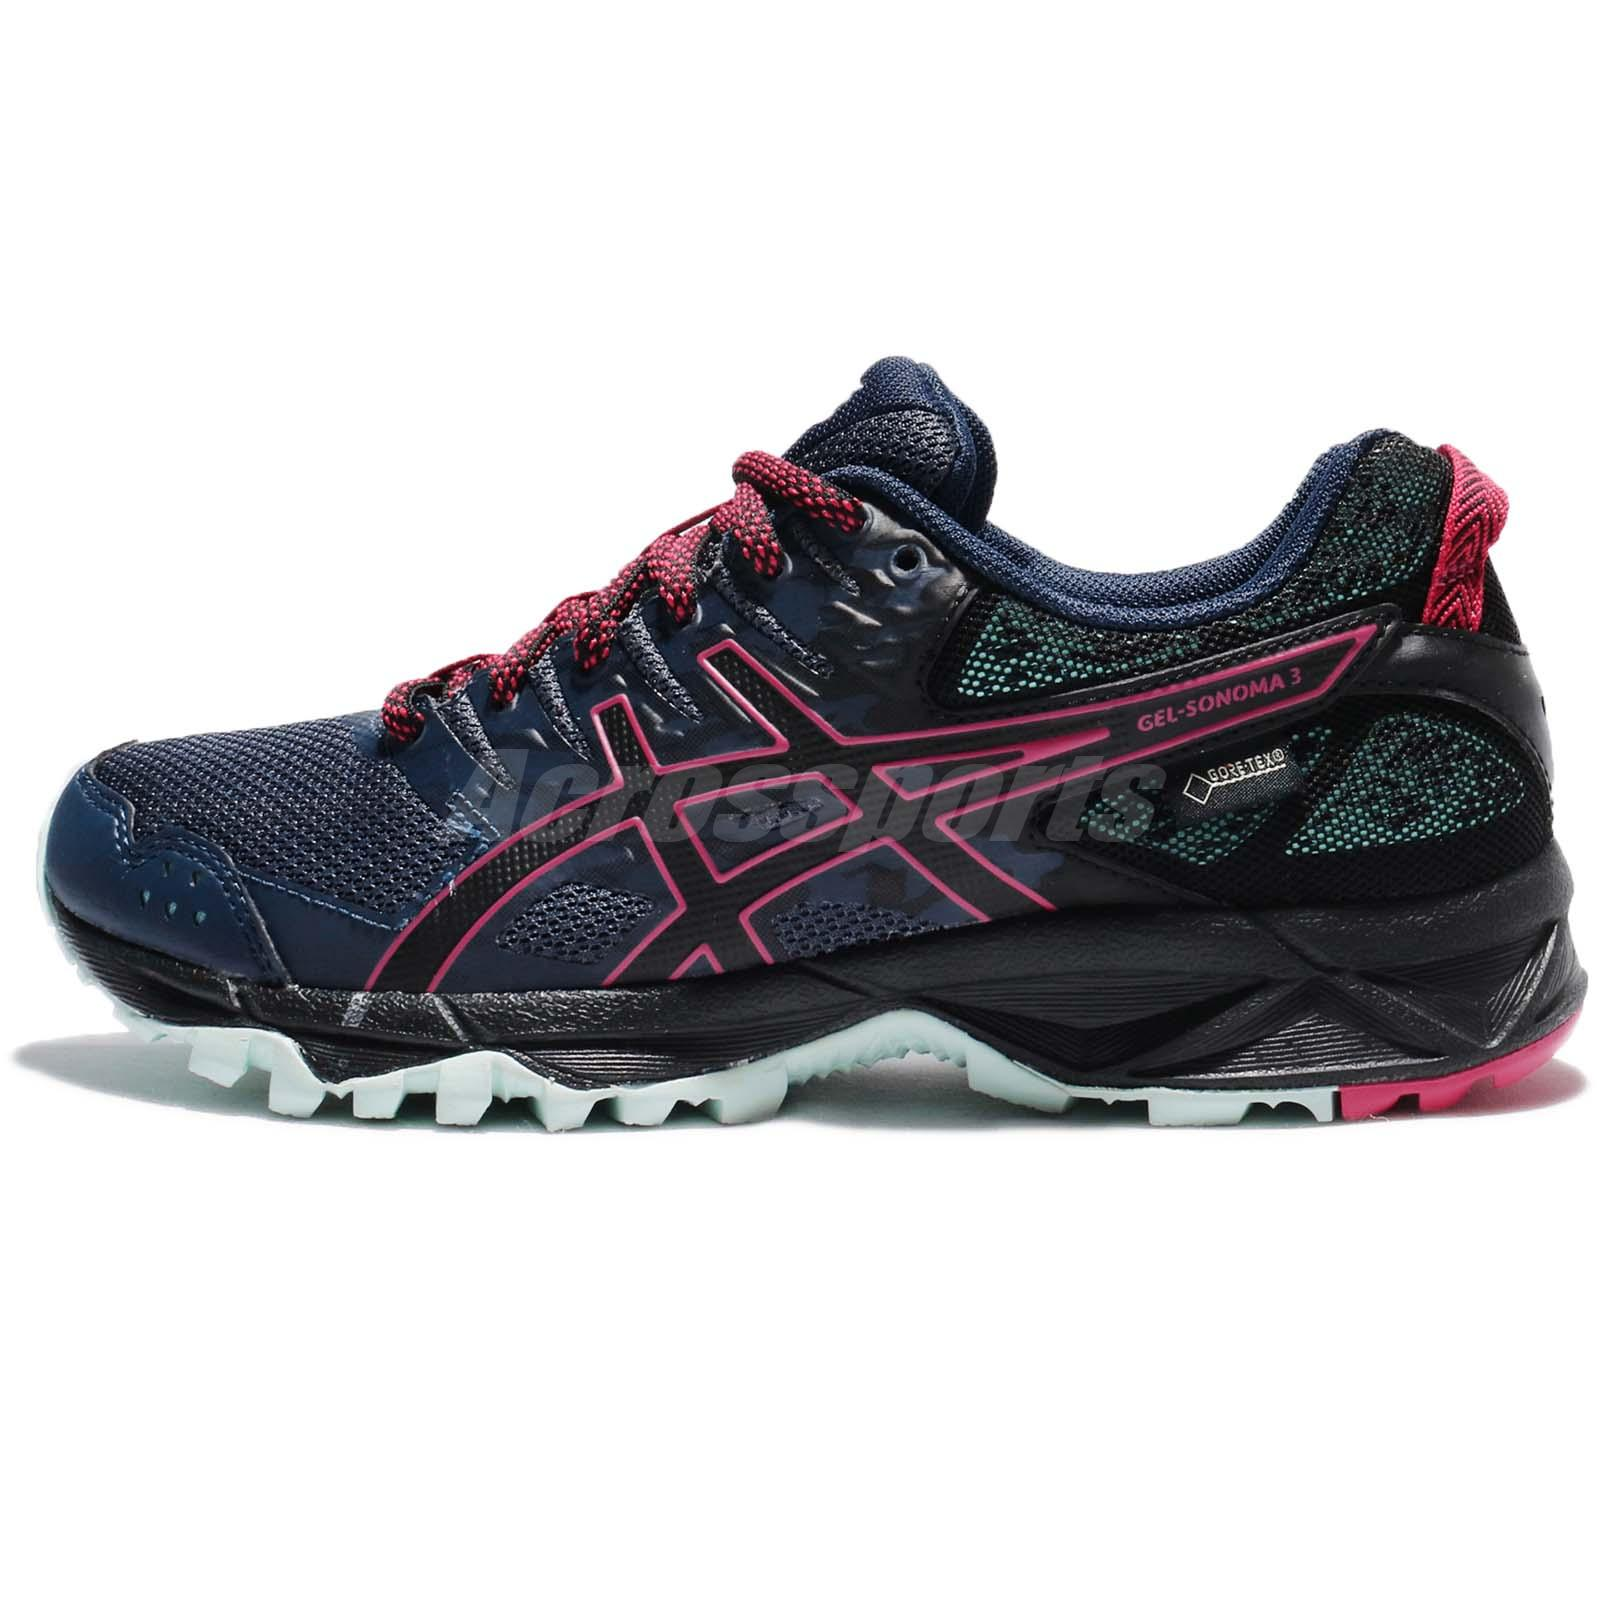 united states 2018 shoes great deals 2017 Asics GEL-SONOMA 3 G-TX Gore-Tex Azul Rosa Mujeres Trail Running ...